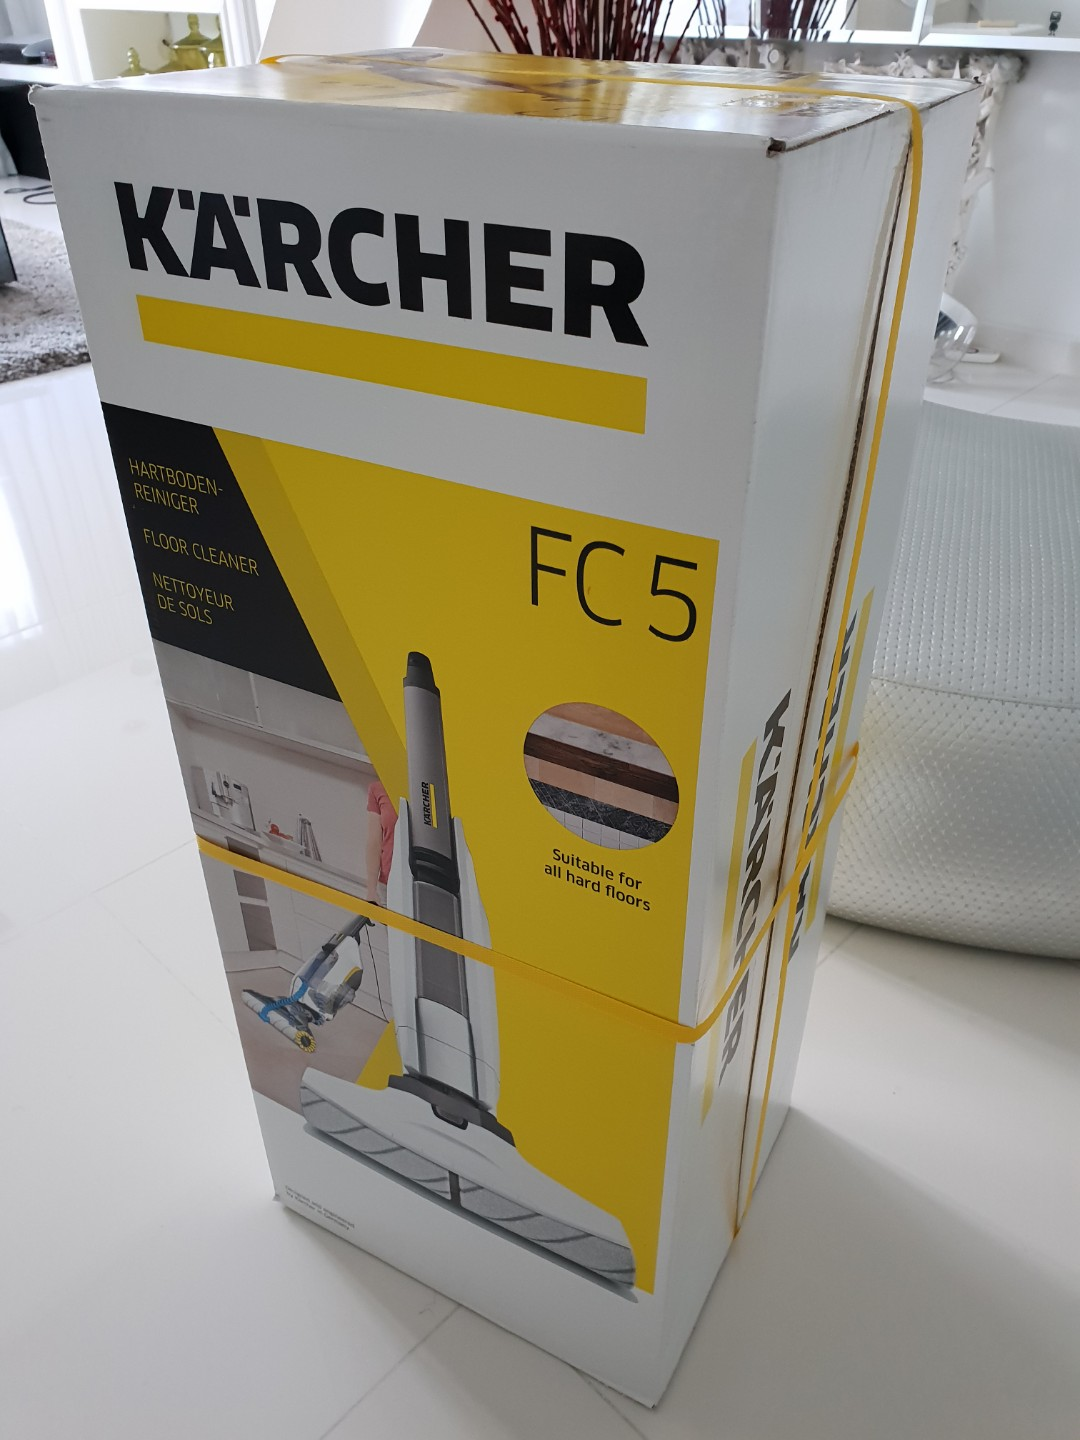 Karcher Reiniger Karcher Hard Floor Cleaner Fc 5 White